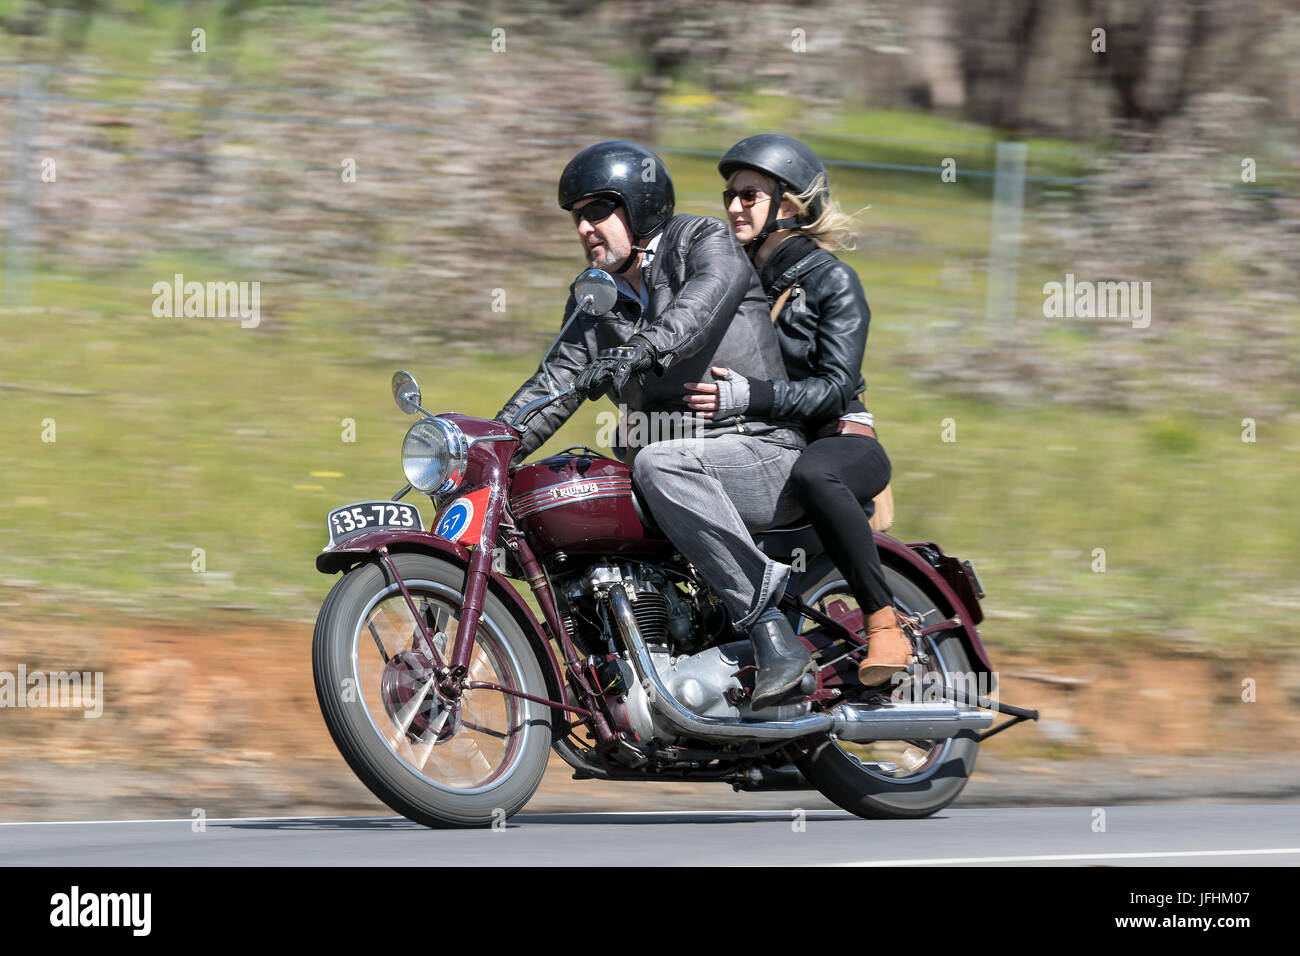 Vintage 1951 Triumph Speed Twin Motorcycle On Country Roads Near The Stock Photo Alamy